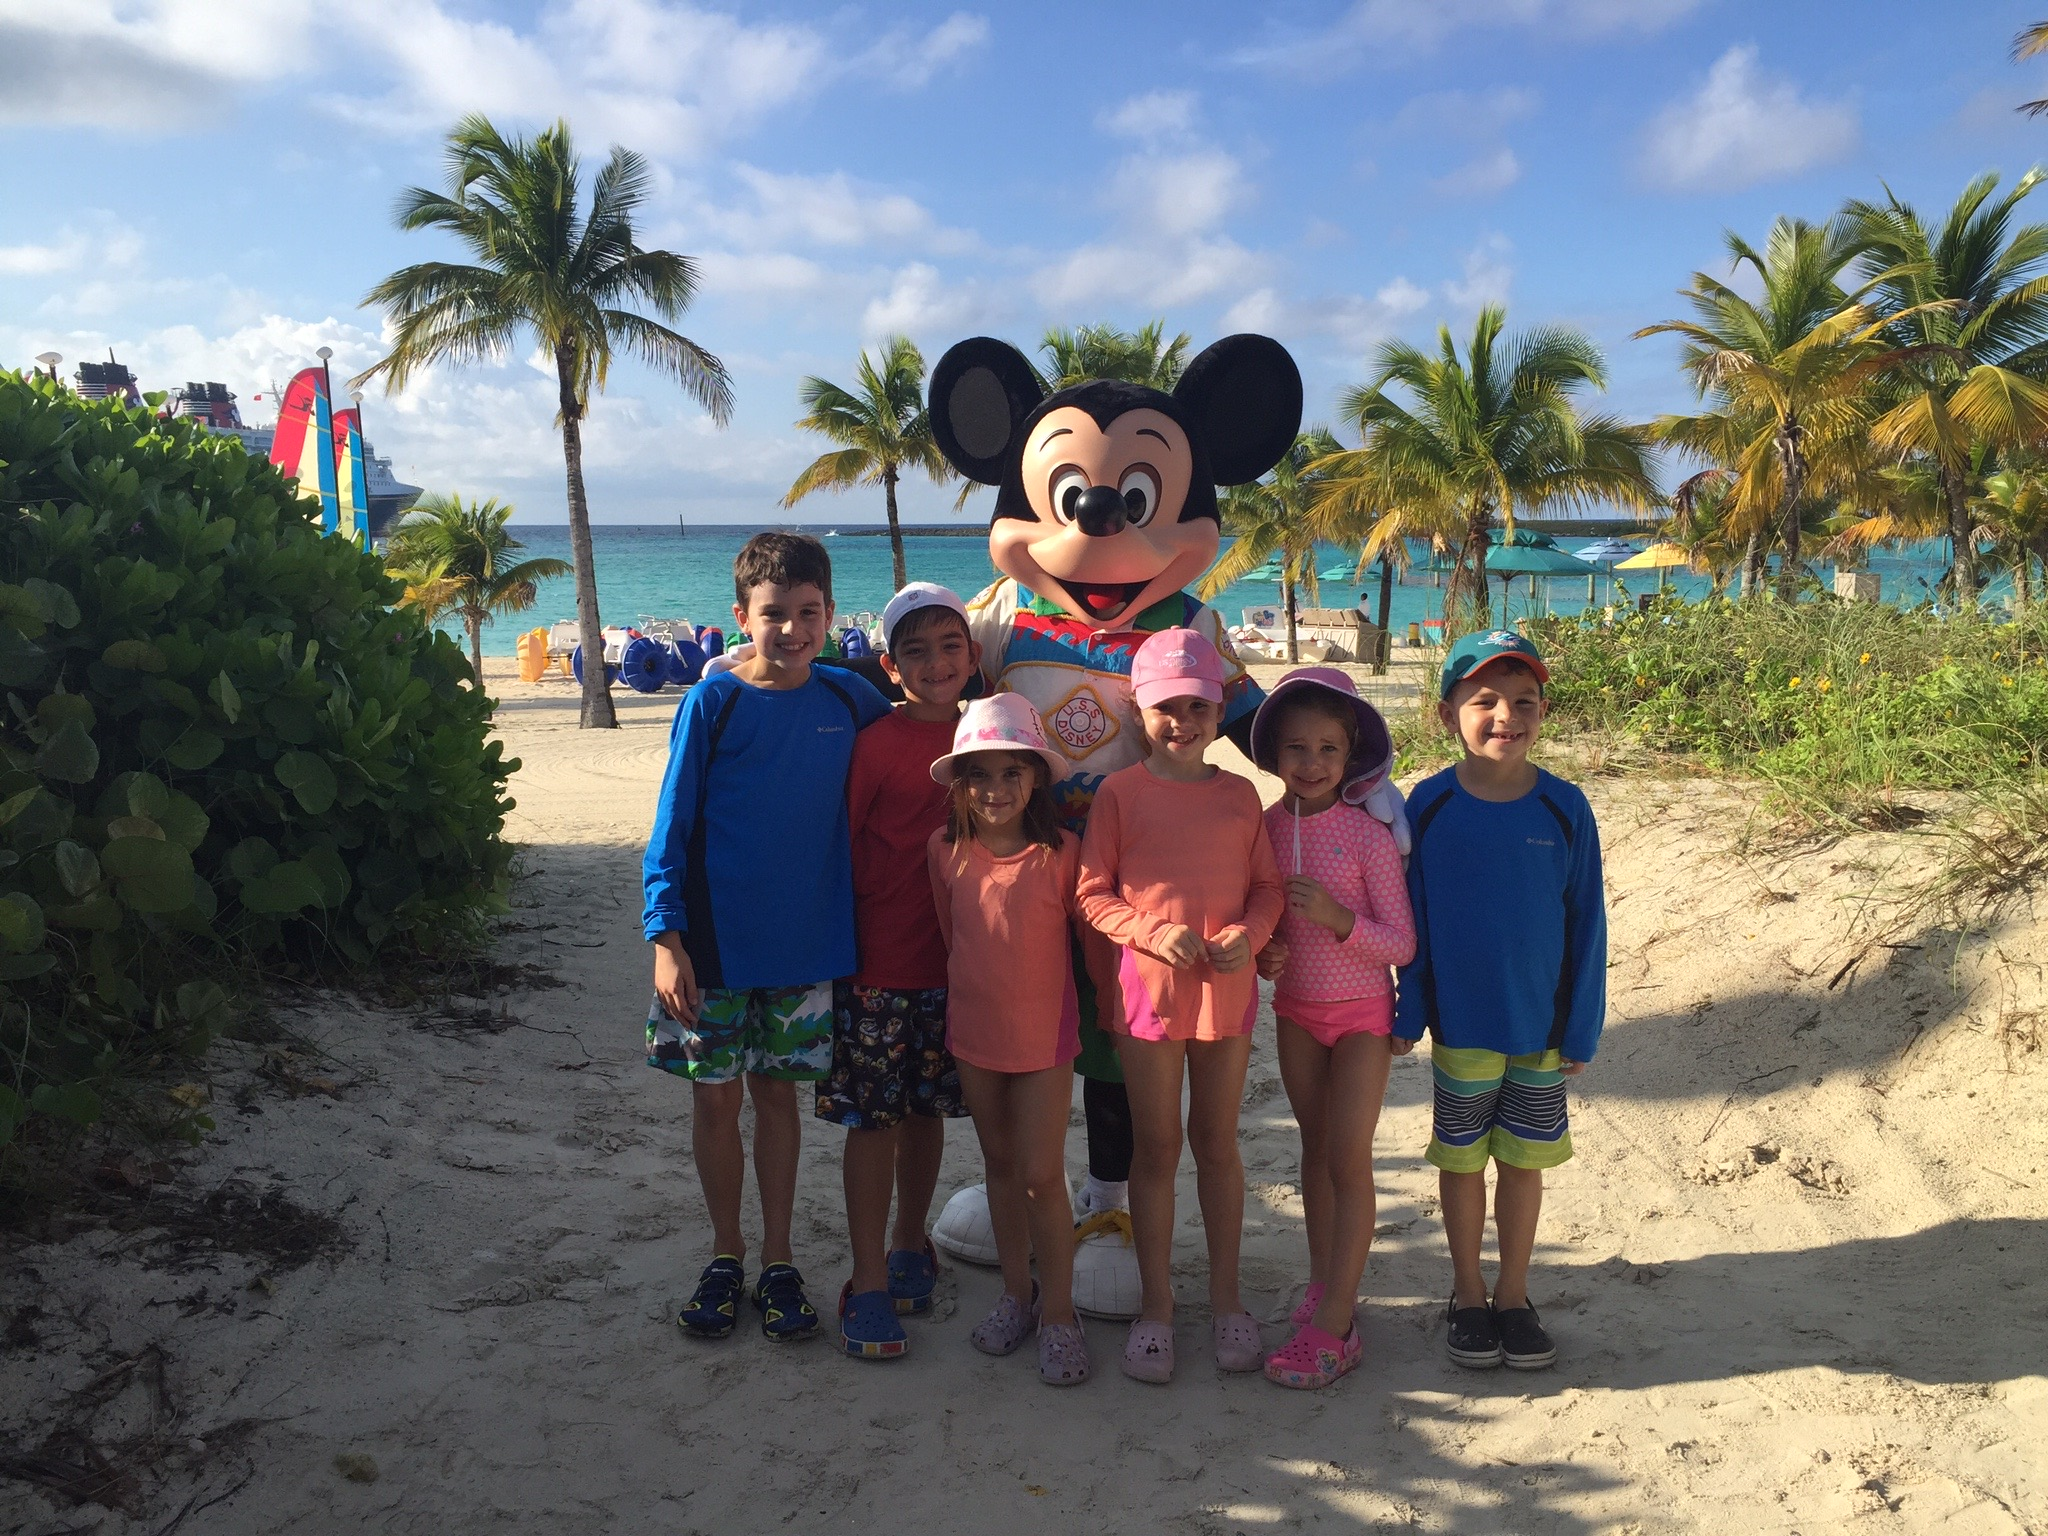 Castaway Cay characters group